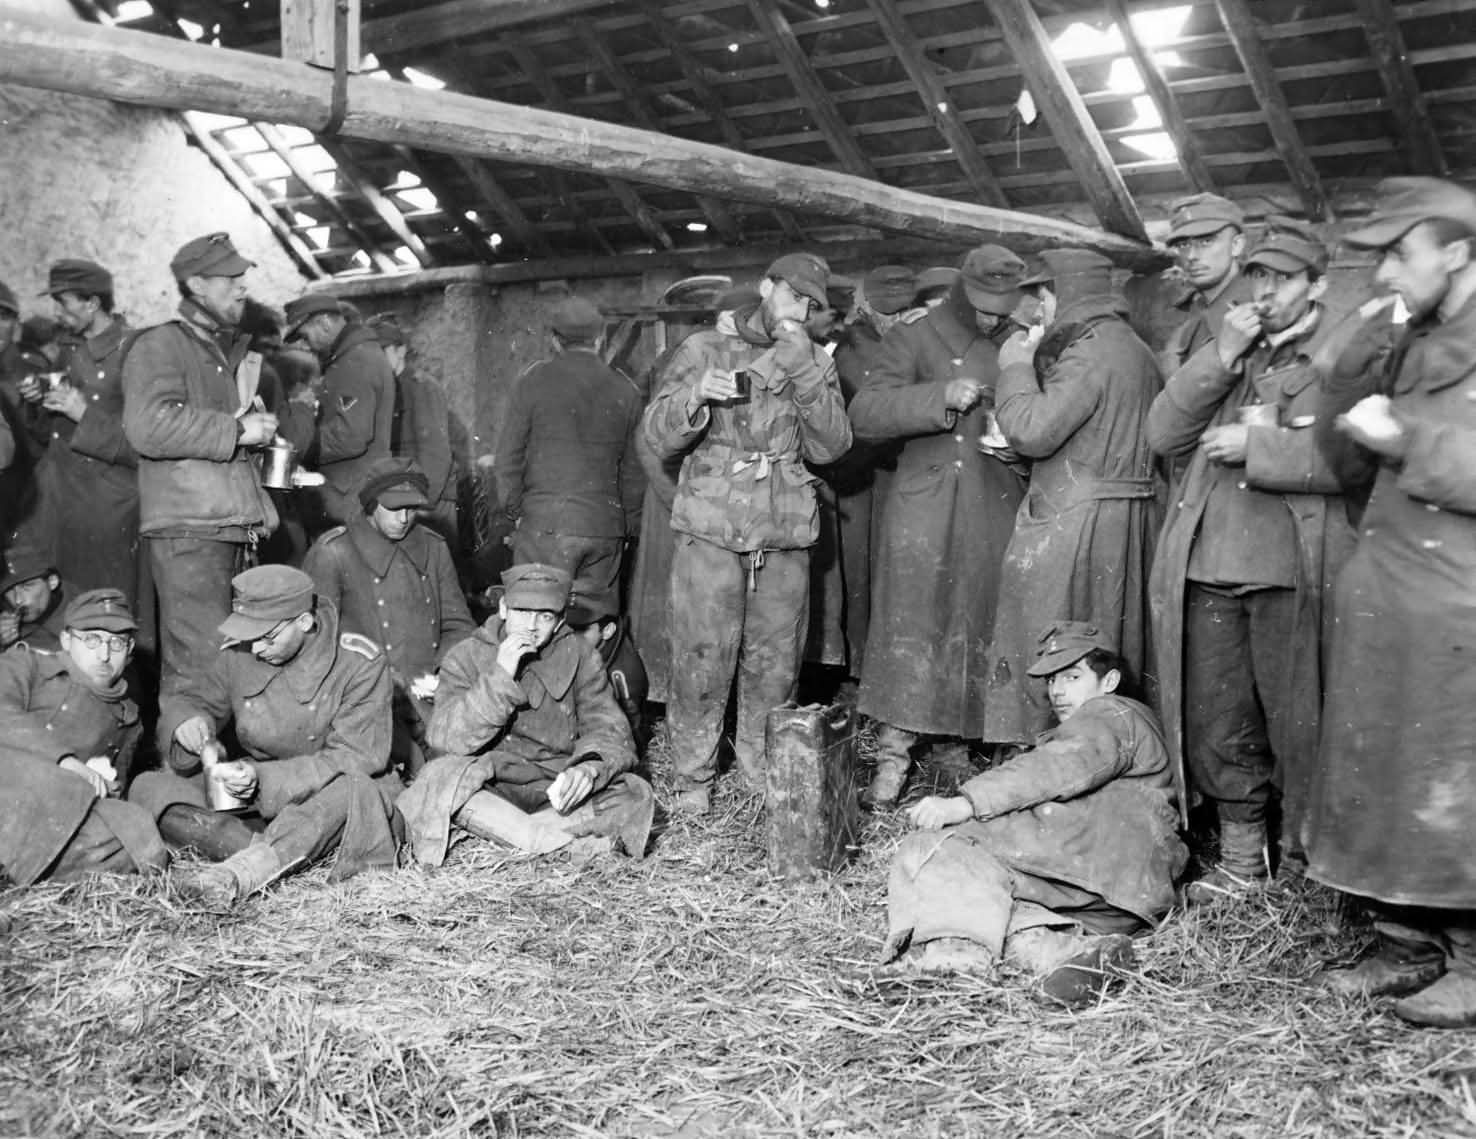 Hungry German Soldiers 80th Division POW's Eat February 1945 Germany